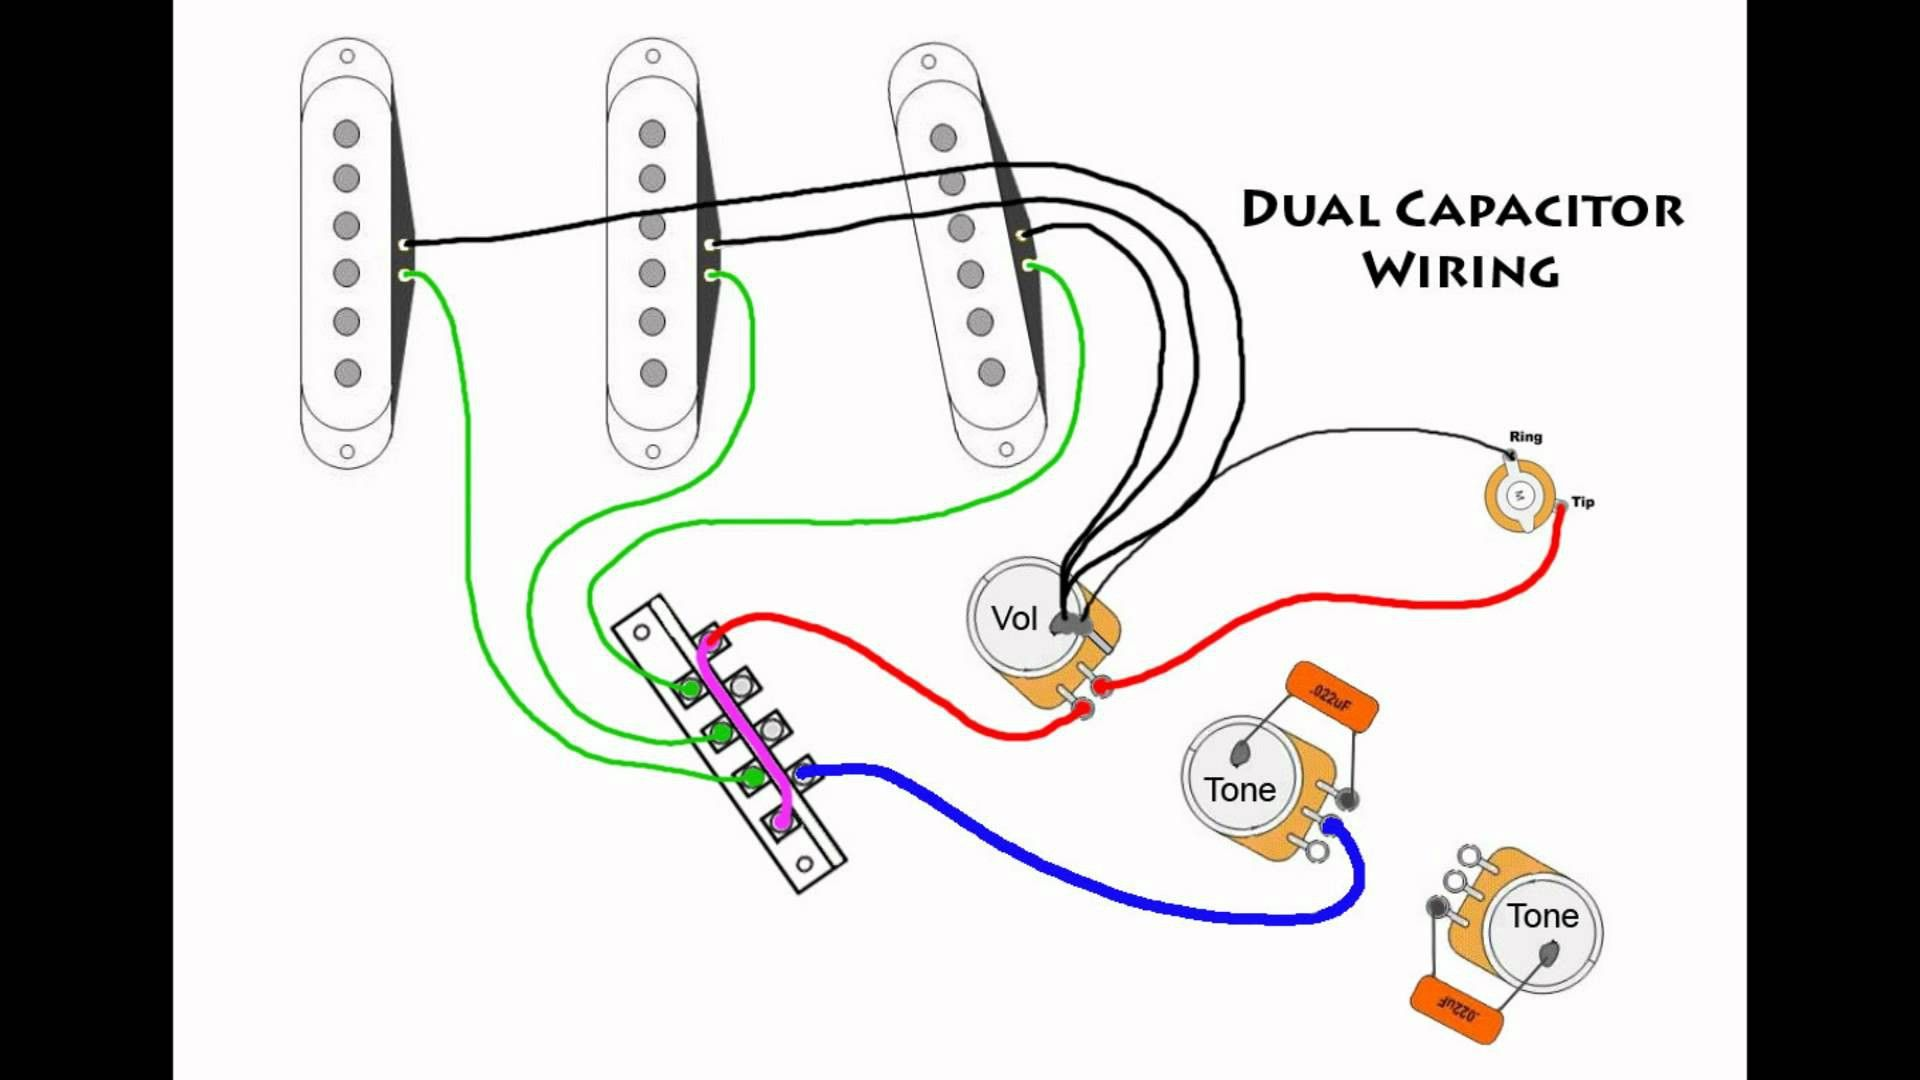 Fender Stratocaster Wiring Diagram Best Of Strat Throughout Diagrams | Stratocaster  guitar, Guitar, Fender stratocasterPinterest